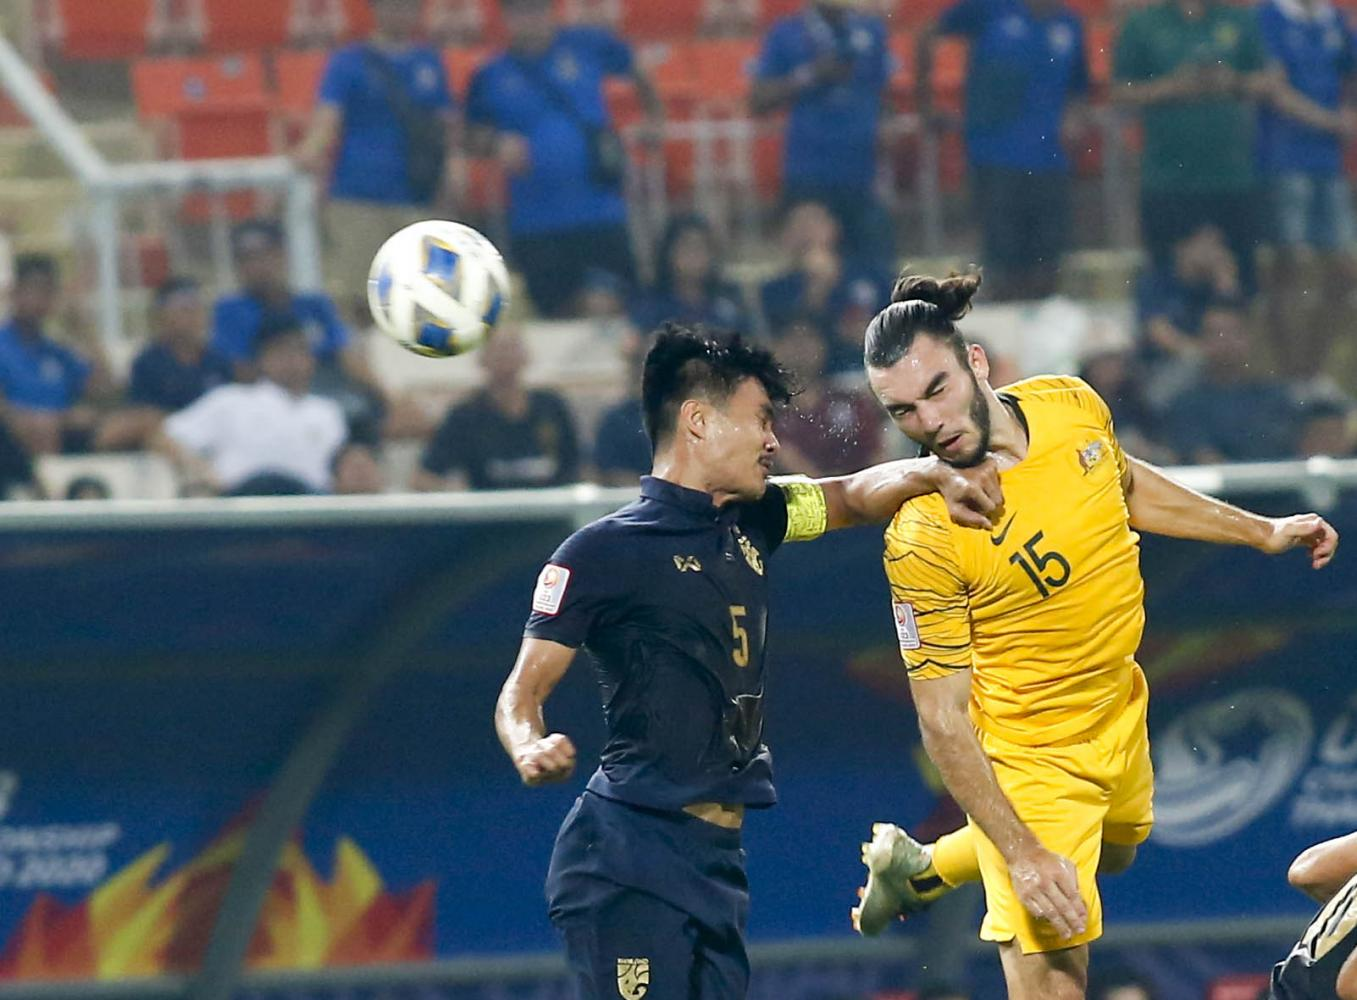 Thailand's Shinnaphat Leeaoh, left, vies with Australia's Nicholas D'Agostino. Pattarapong Chatpattarasill